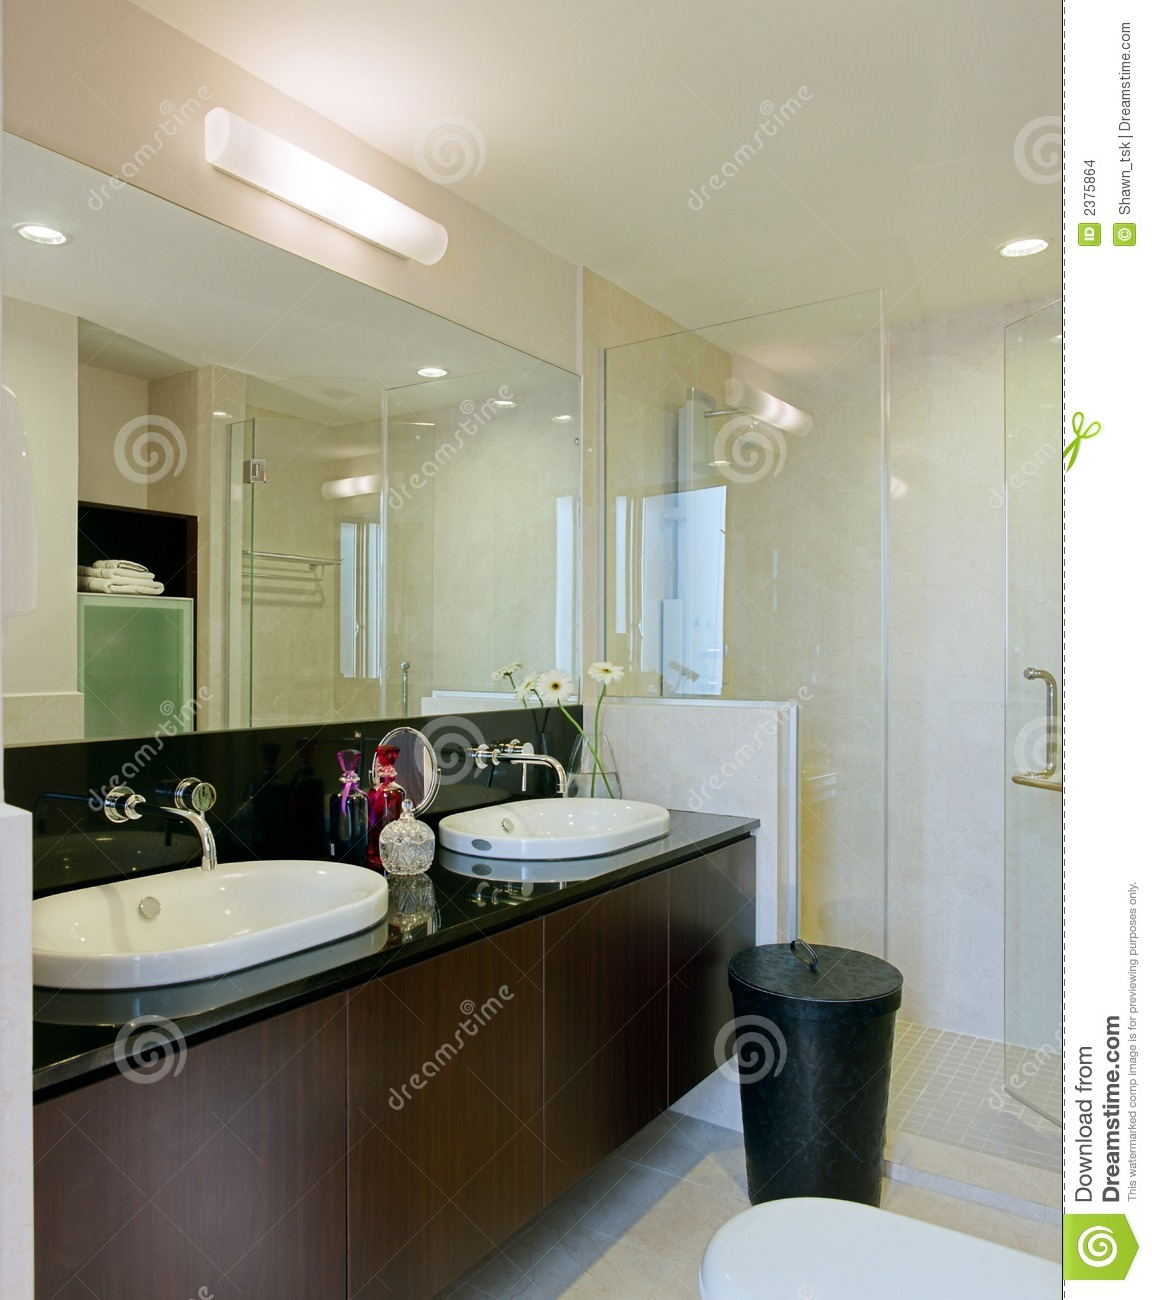 Interior design bathroom stock photo image of cabinet 2375864 - Interior bathroom design ...